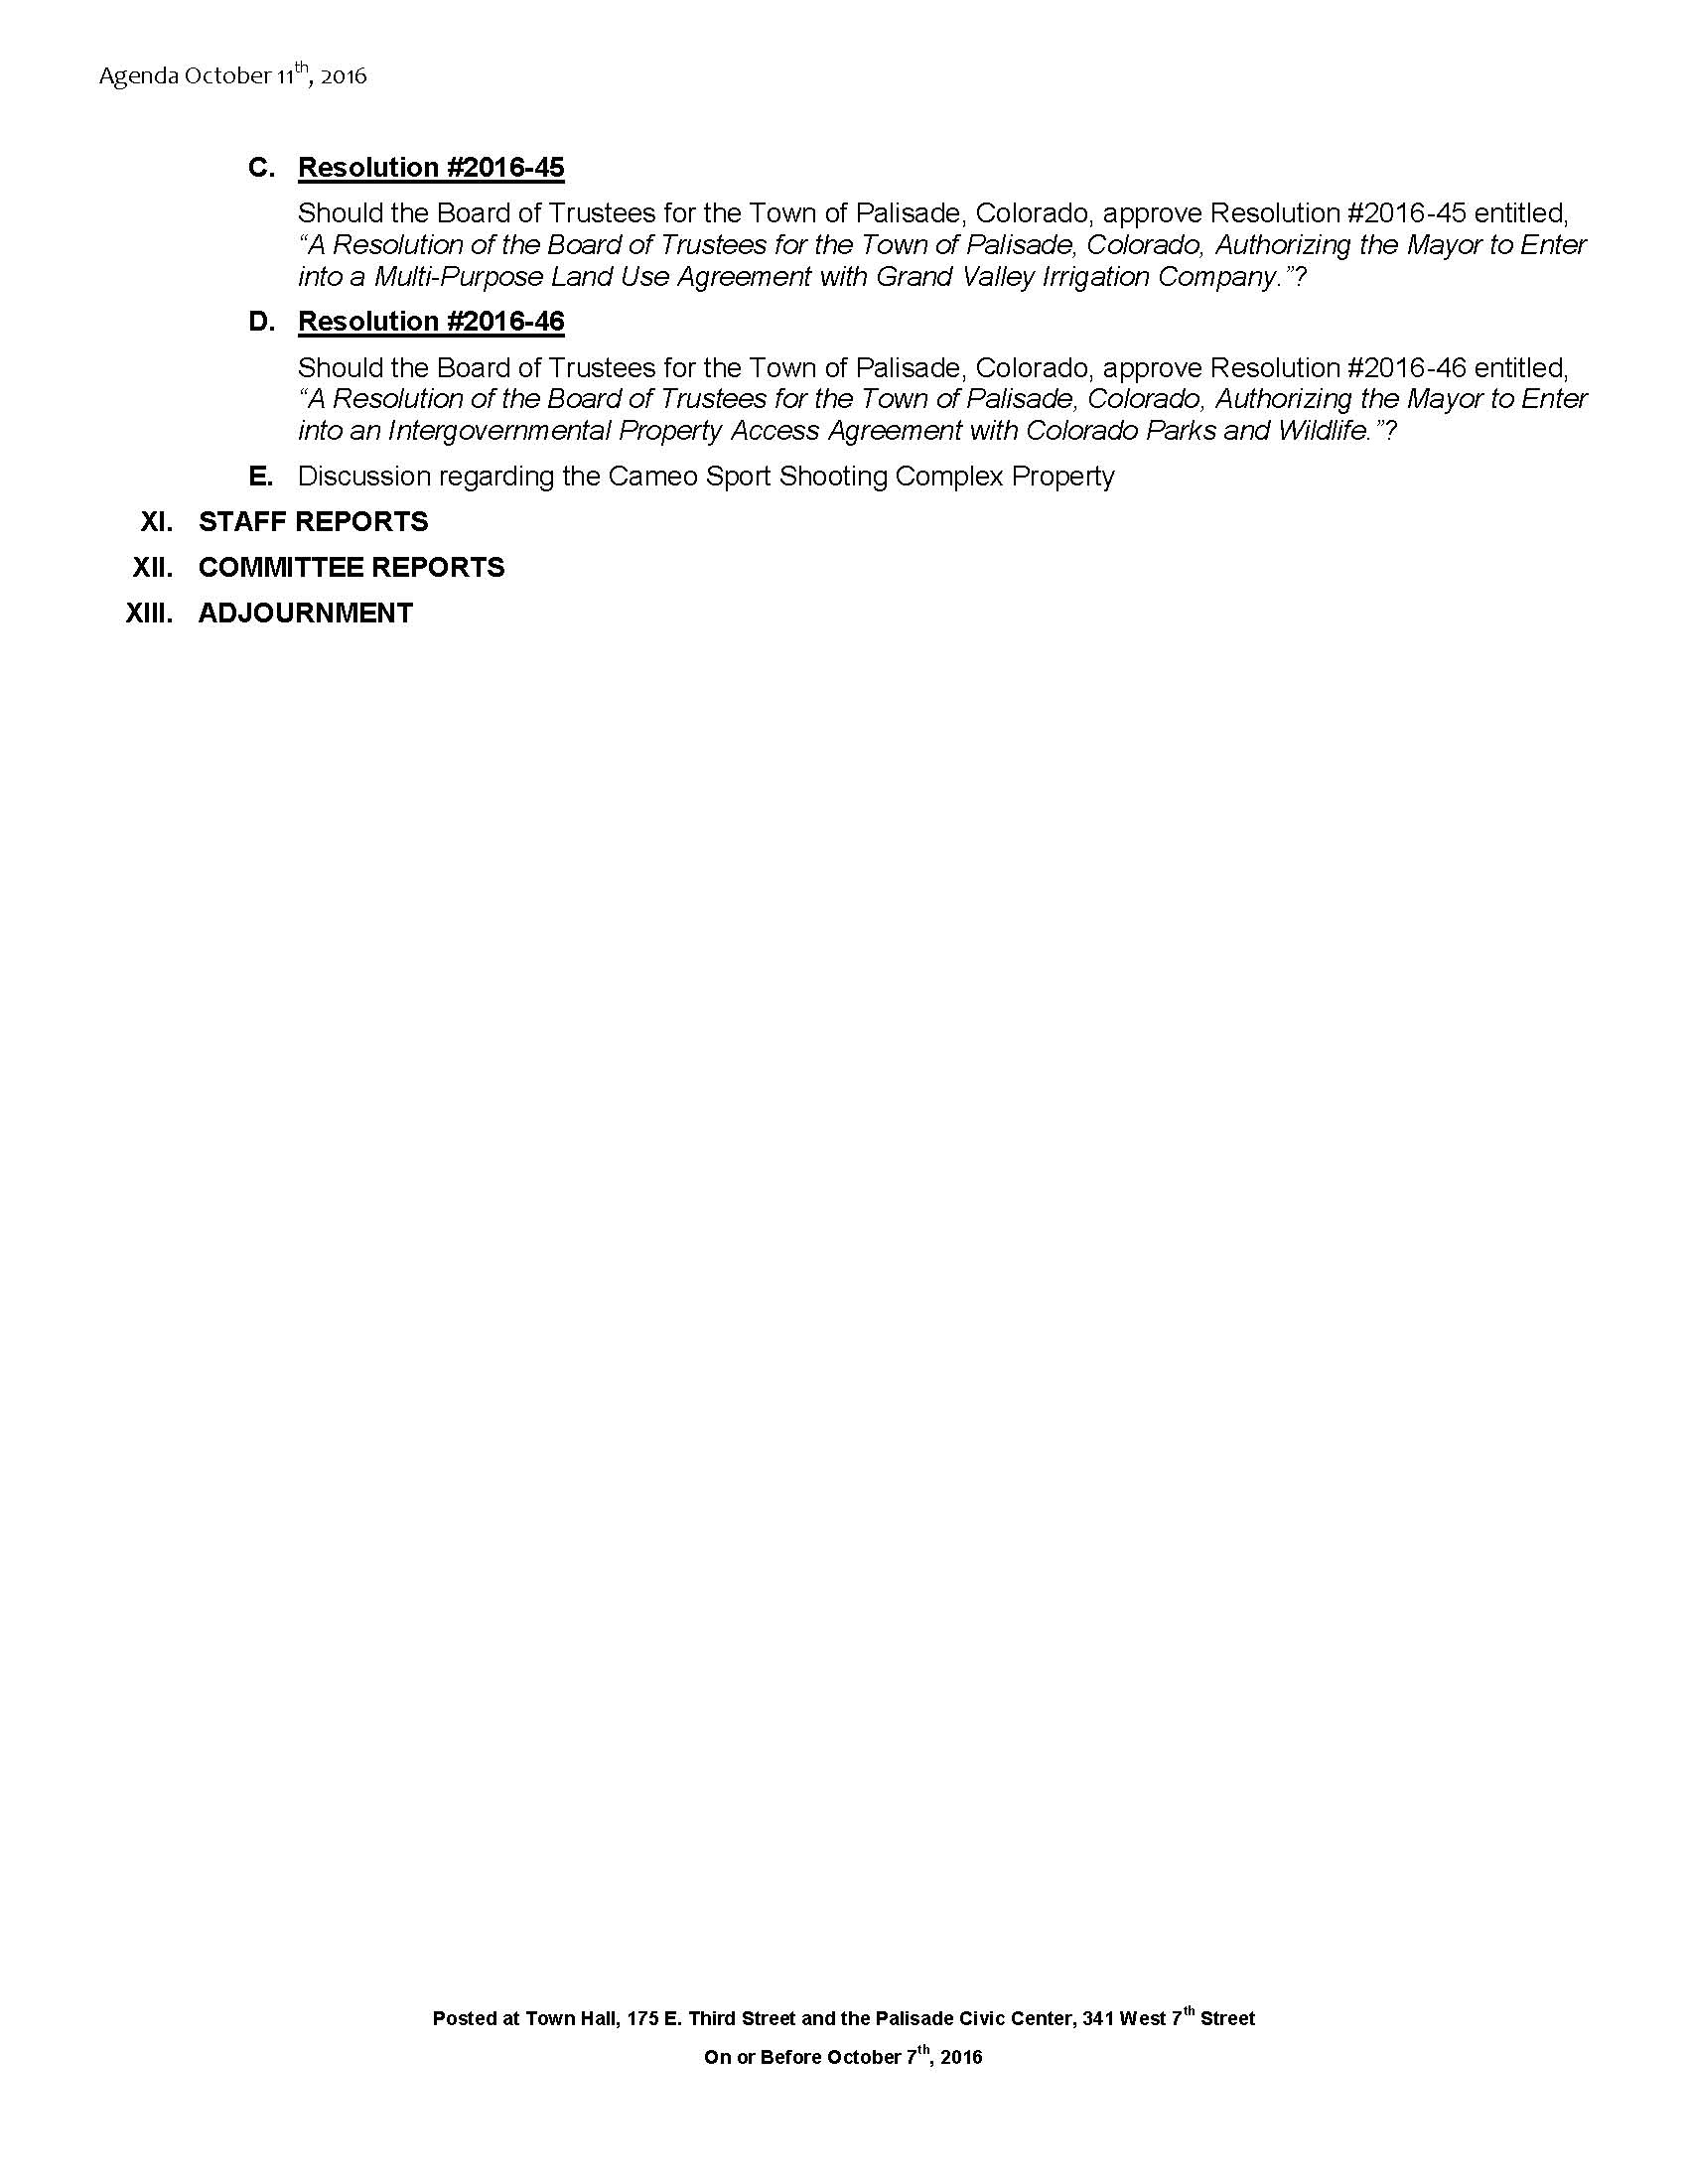 October 11th 2016 Board Meeting Agenda Page 2